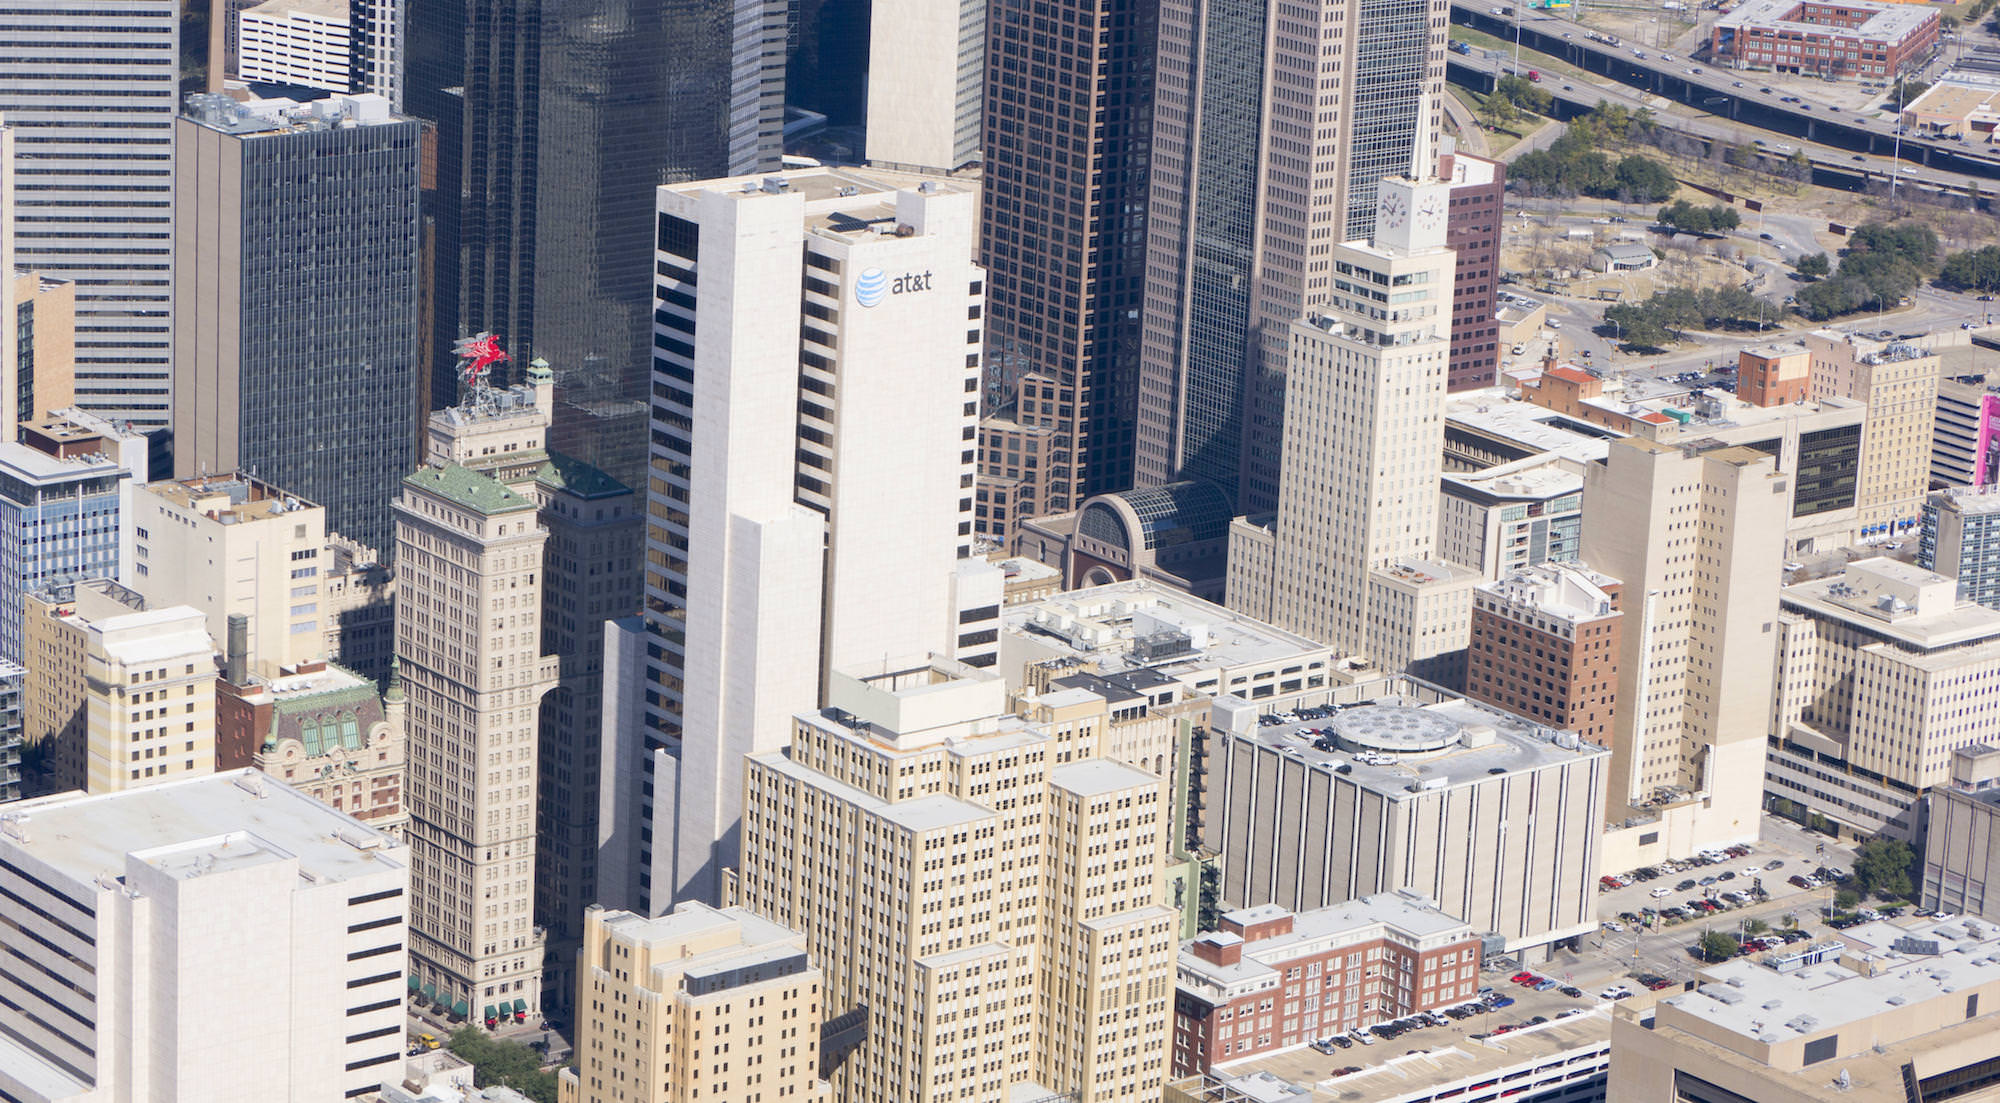 Dallas Aerial Photography: Global Video Leads the Way